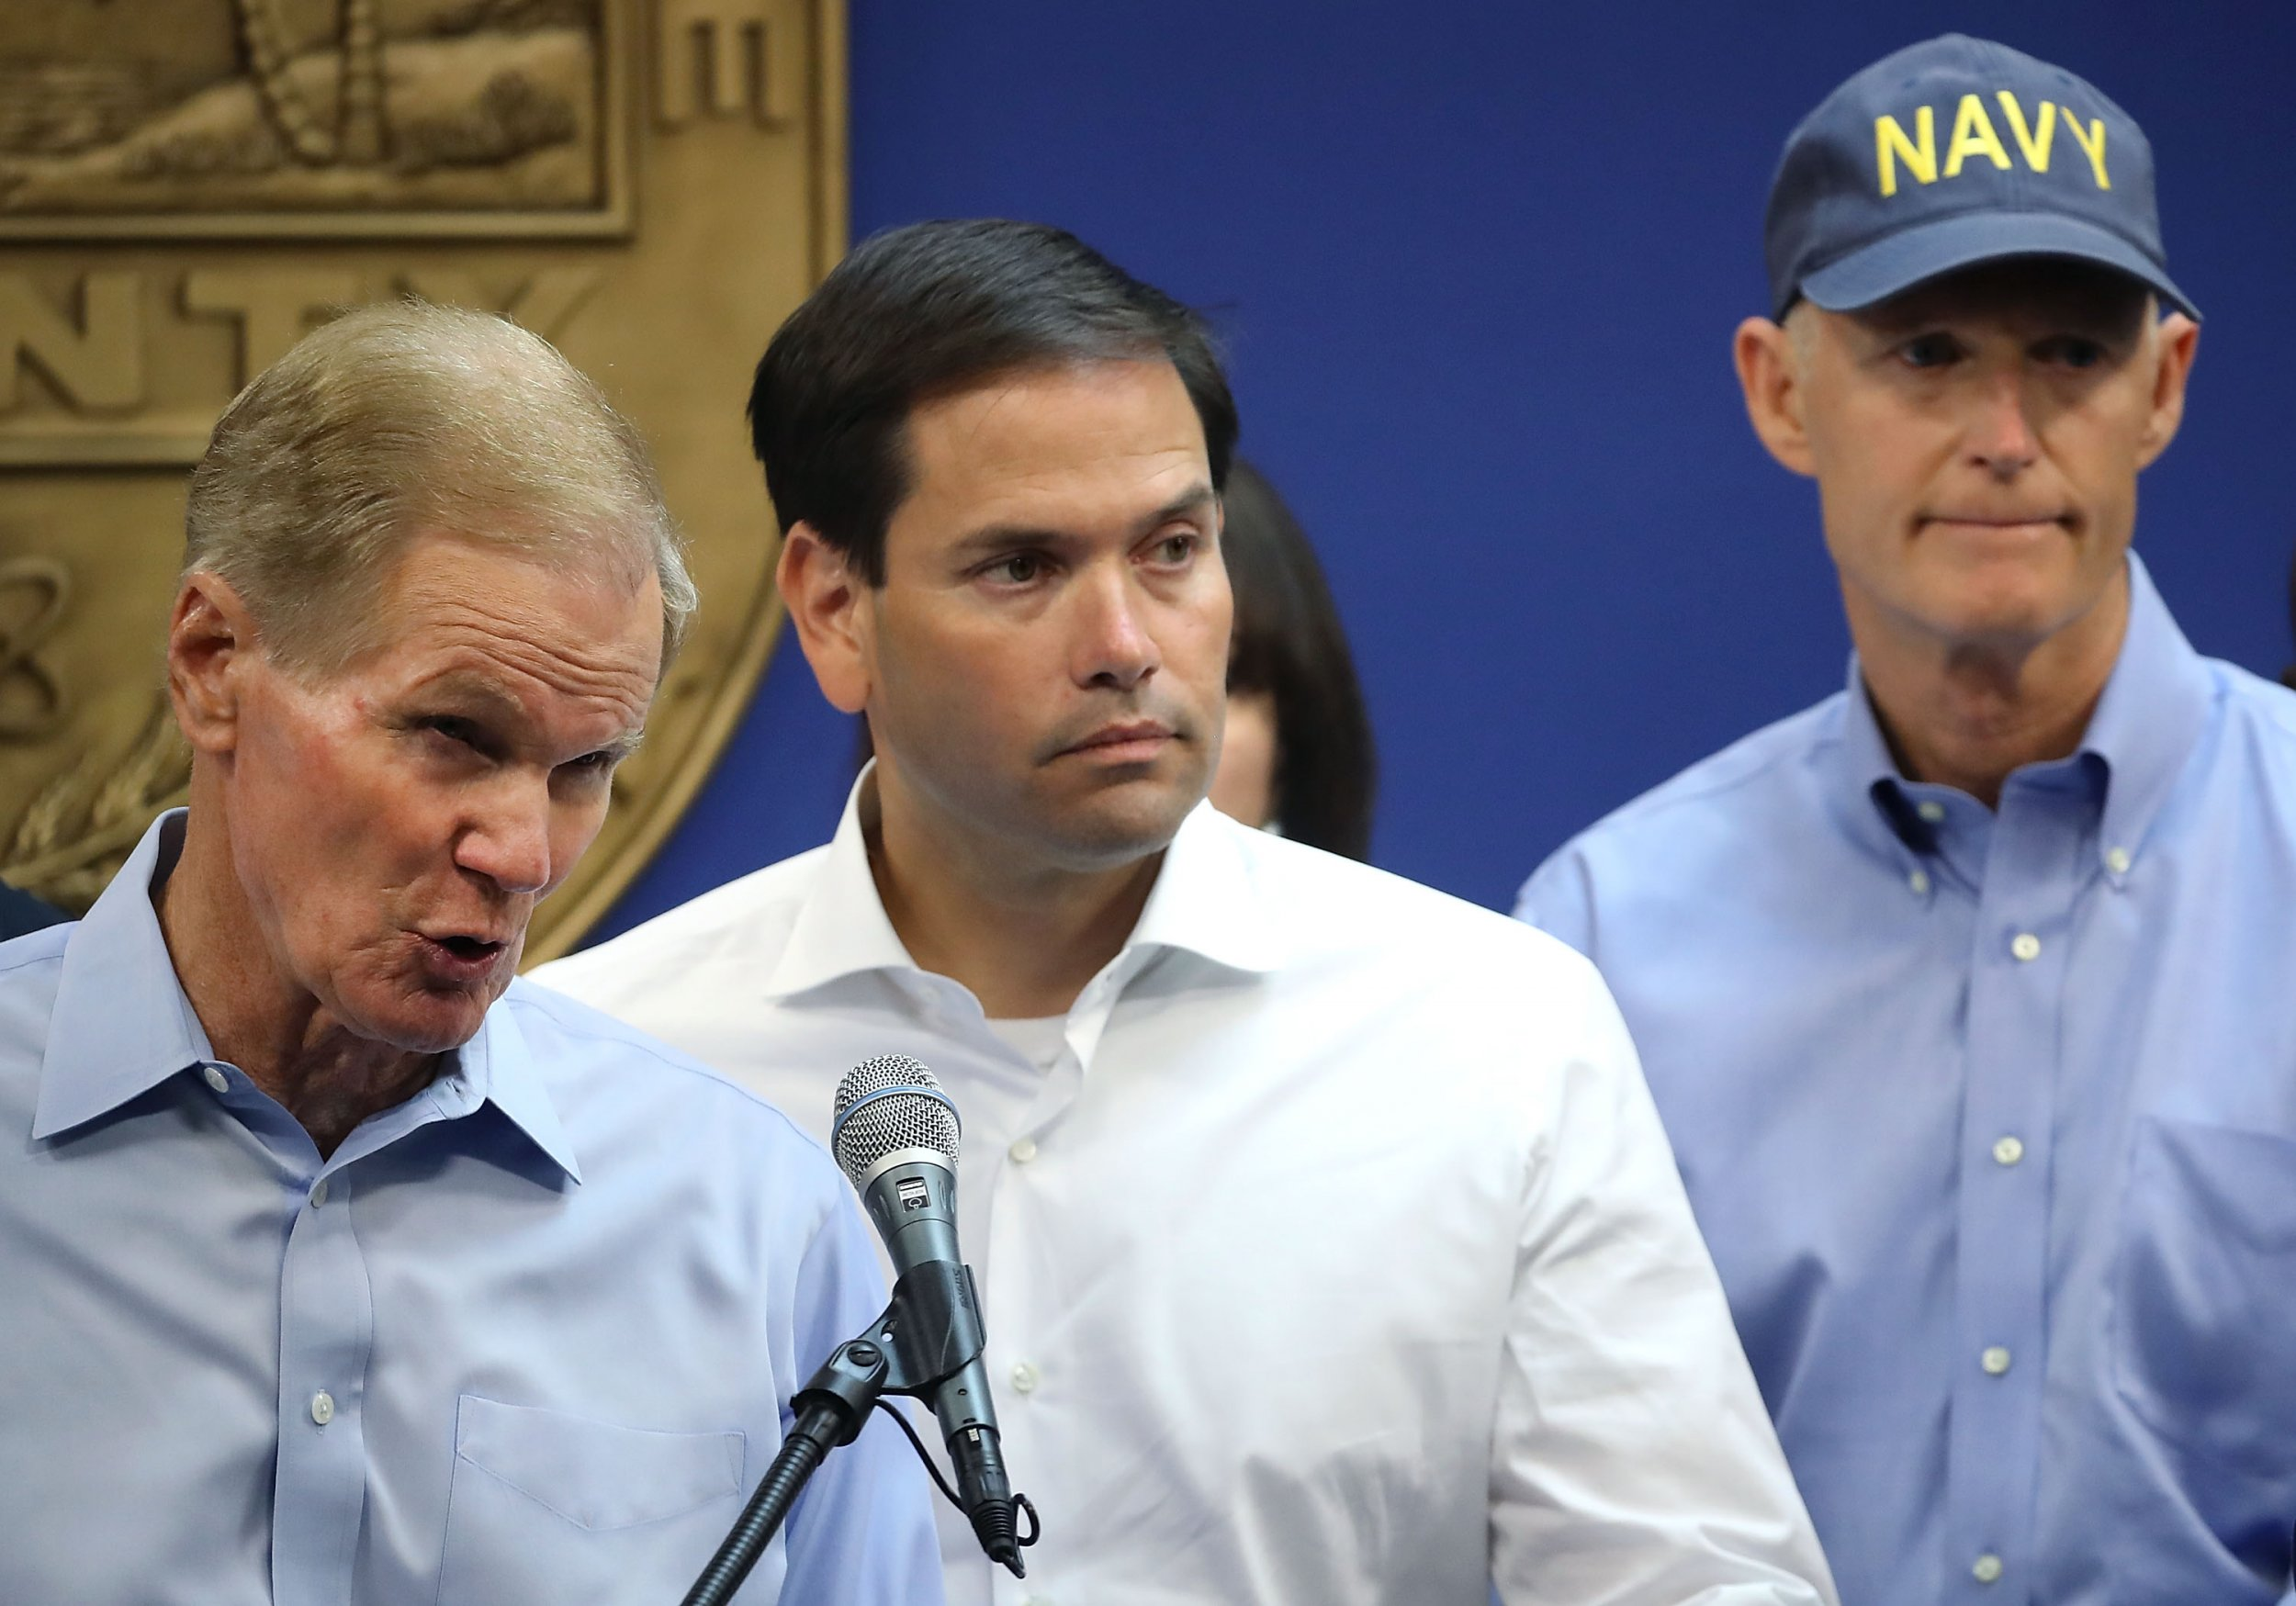 Florida Senate Race: Rick Scott, Bill Nelson Headed for Statewide Recount